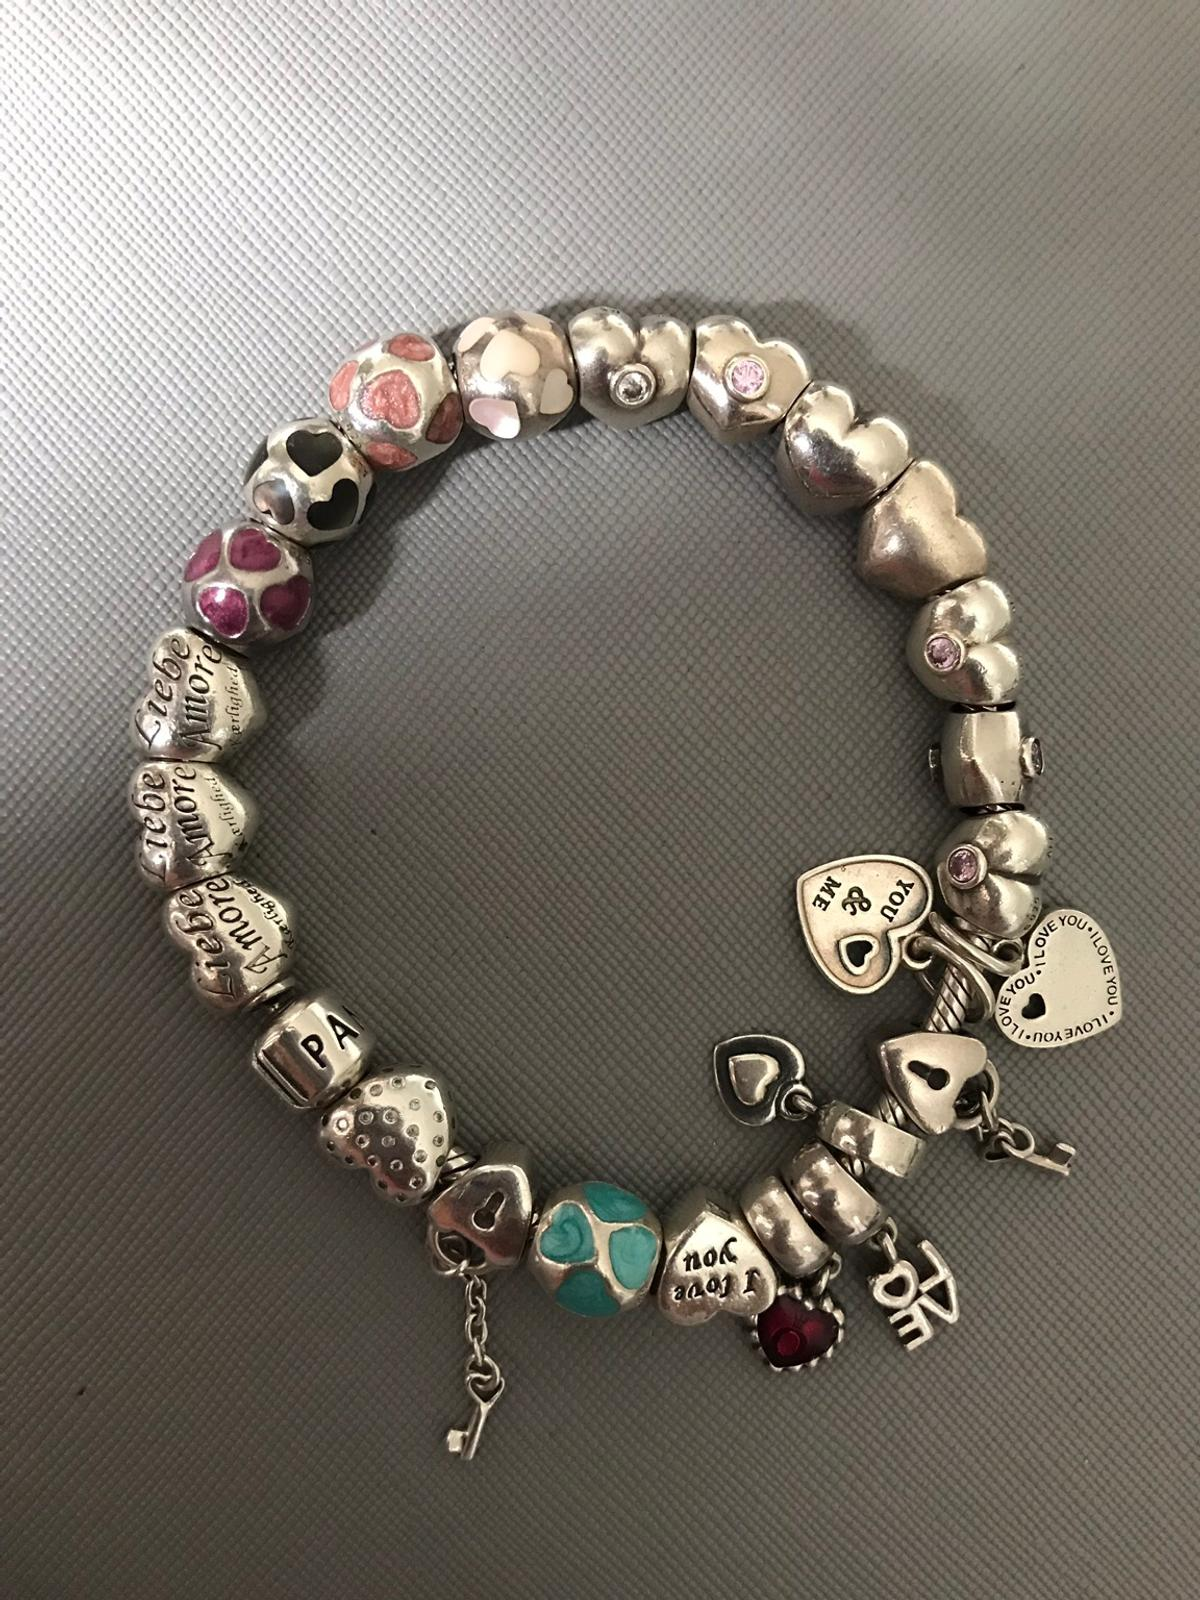 Pandora Love Charms In Se23 Lewisham For 15 00 For Sale Shpock